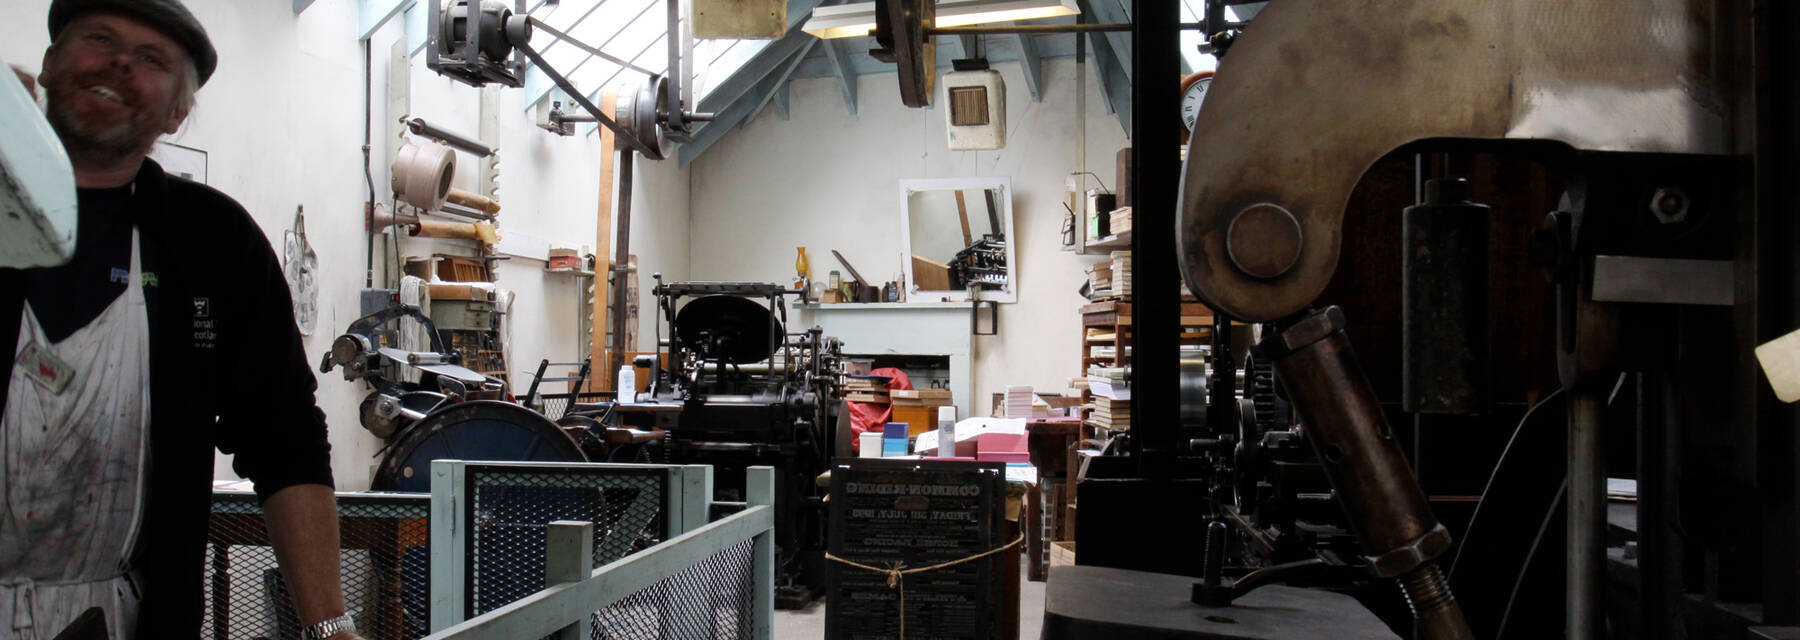 The machine room which houses the printing presses